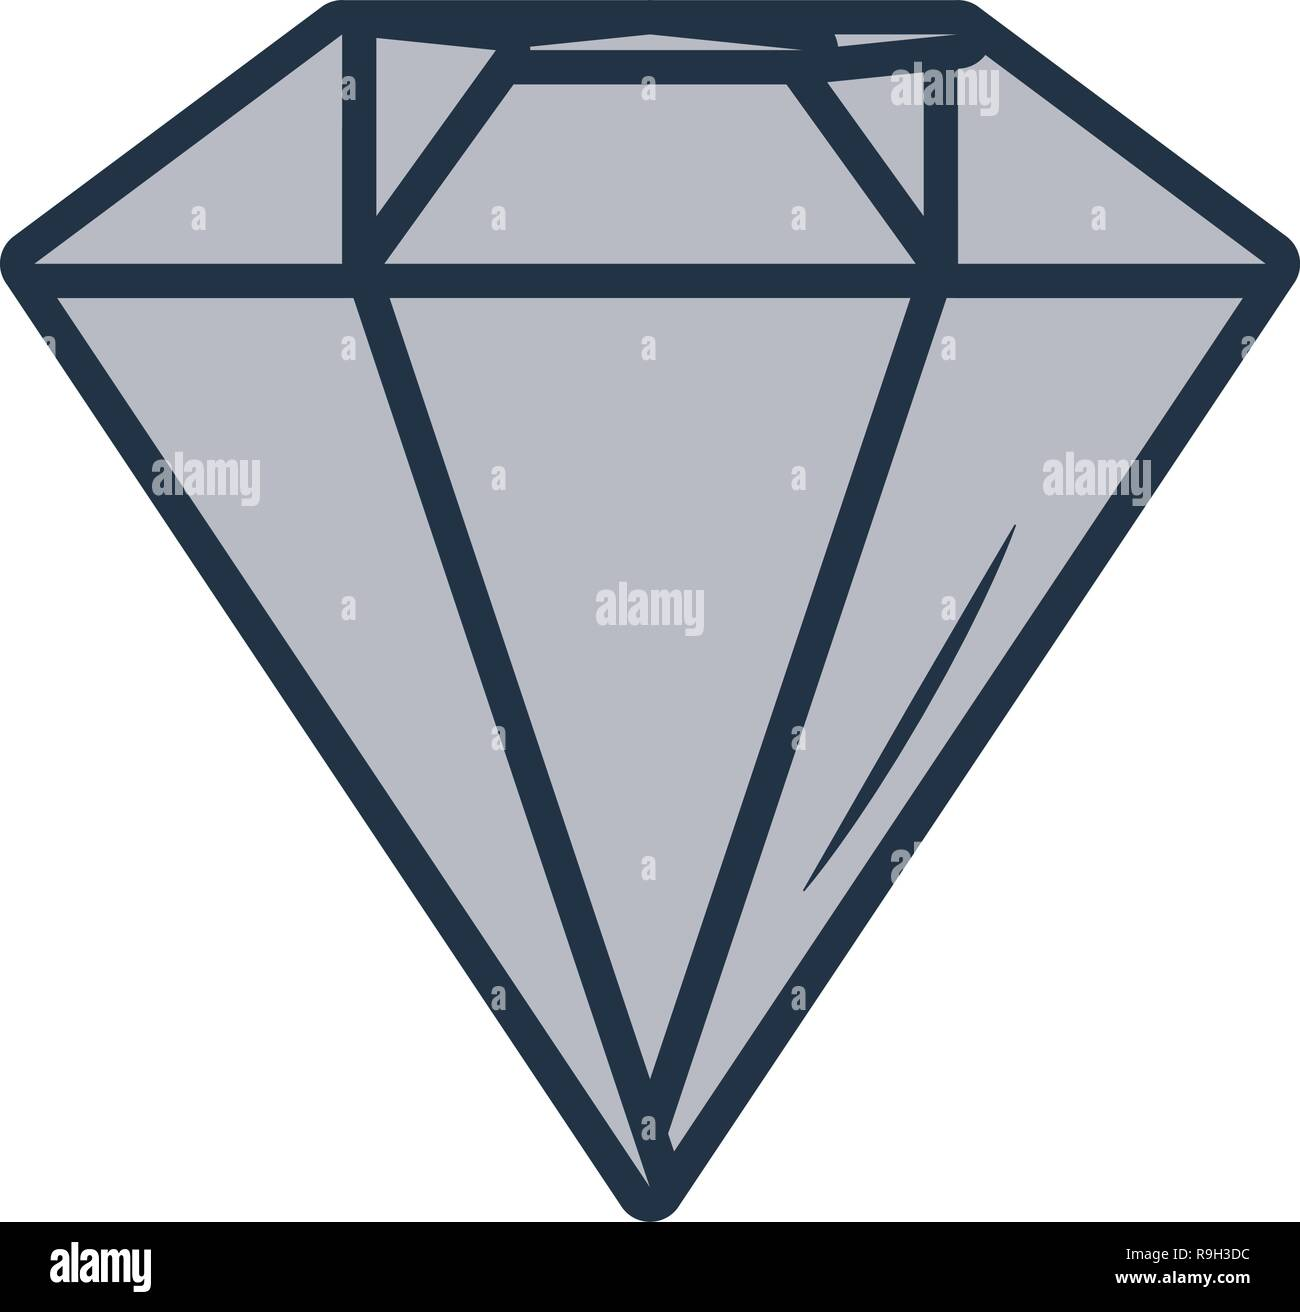 luxury diamond cartoon - Stock Vector